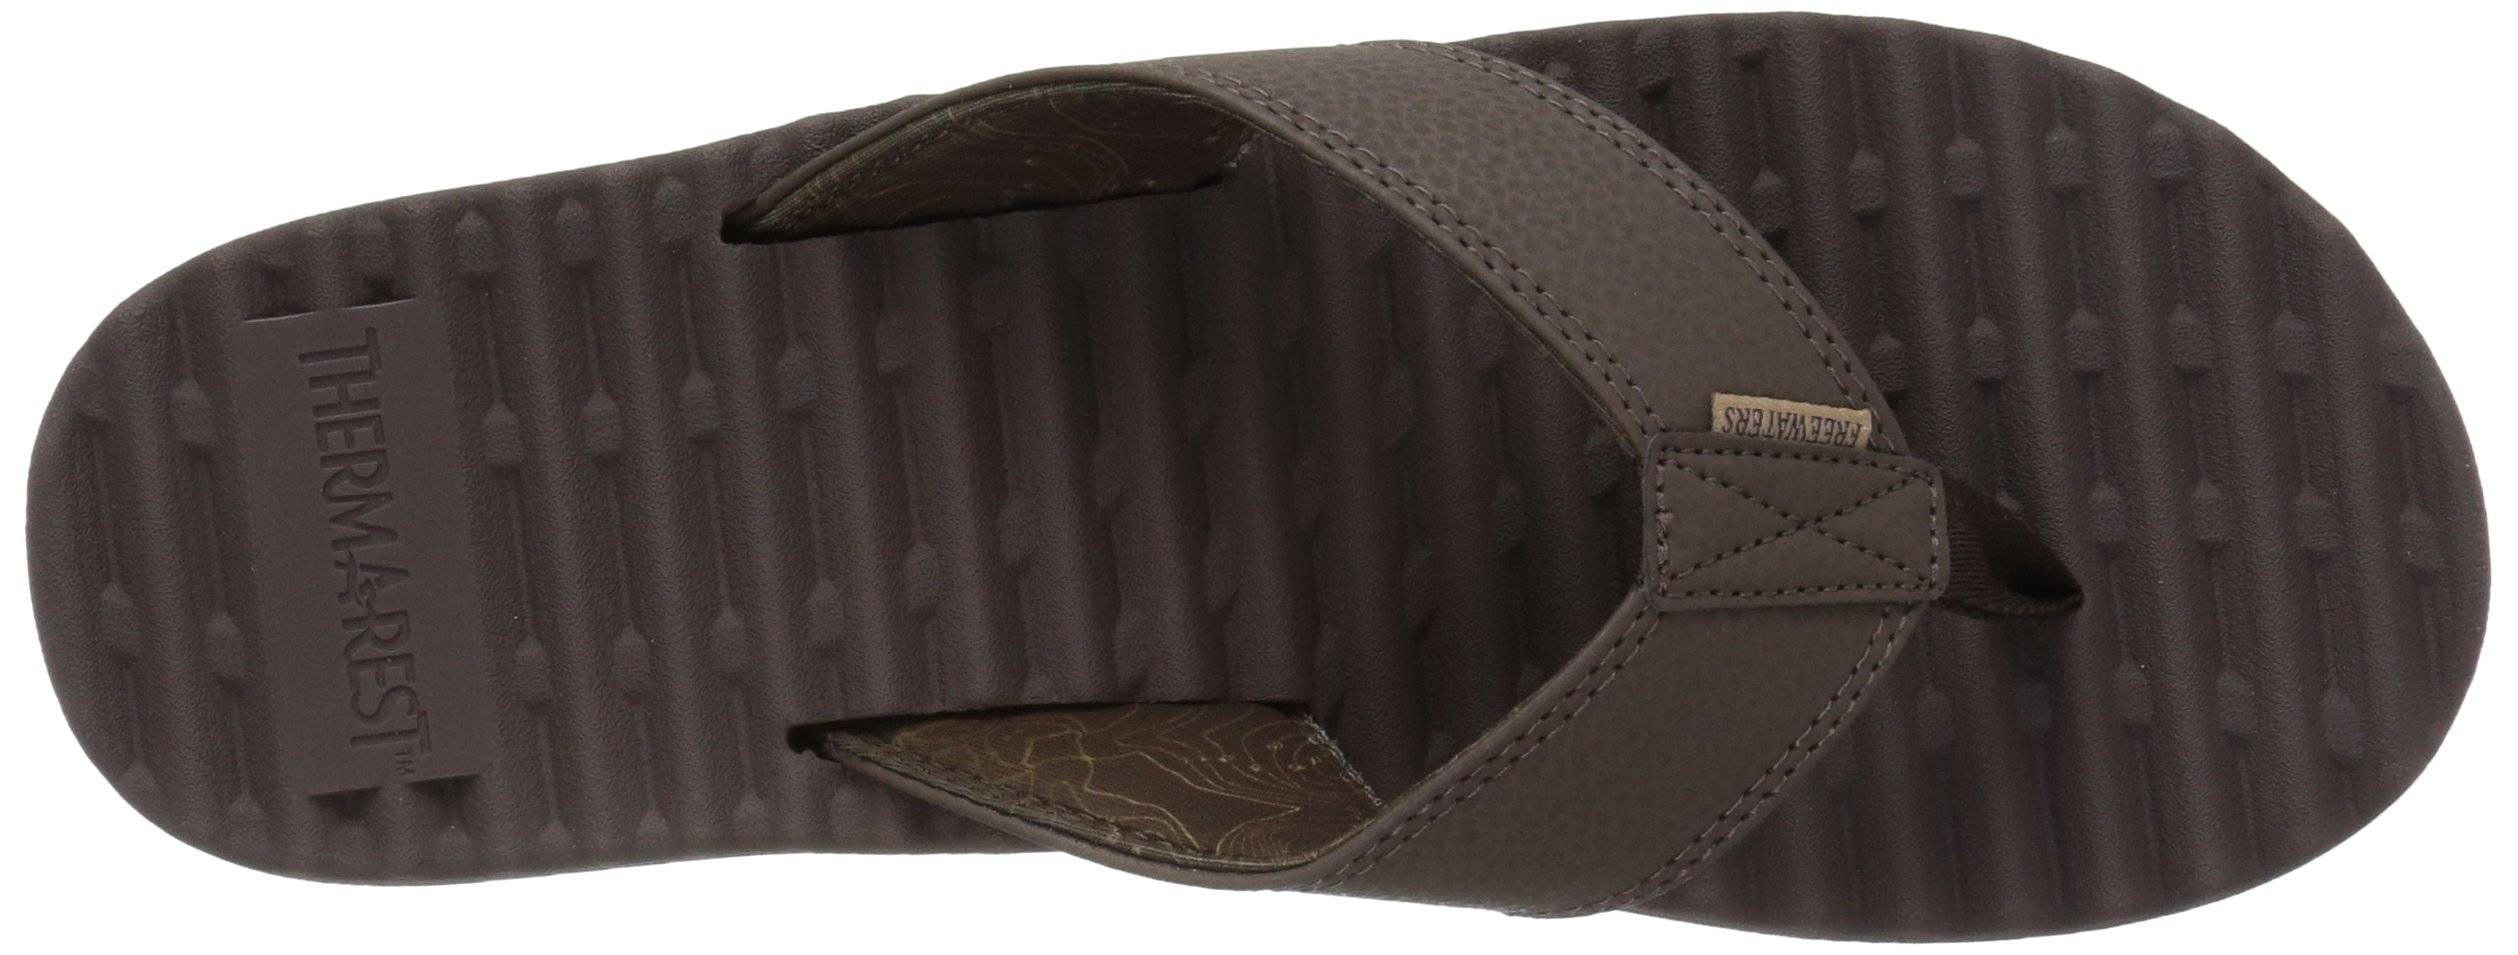 Freewaters Men's Basecamp Therm-a-Rest Flip Flop Sandal, Brown, 10 M US by Freewaters (Image #8)